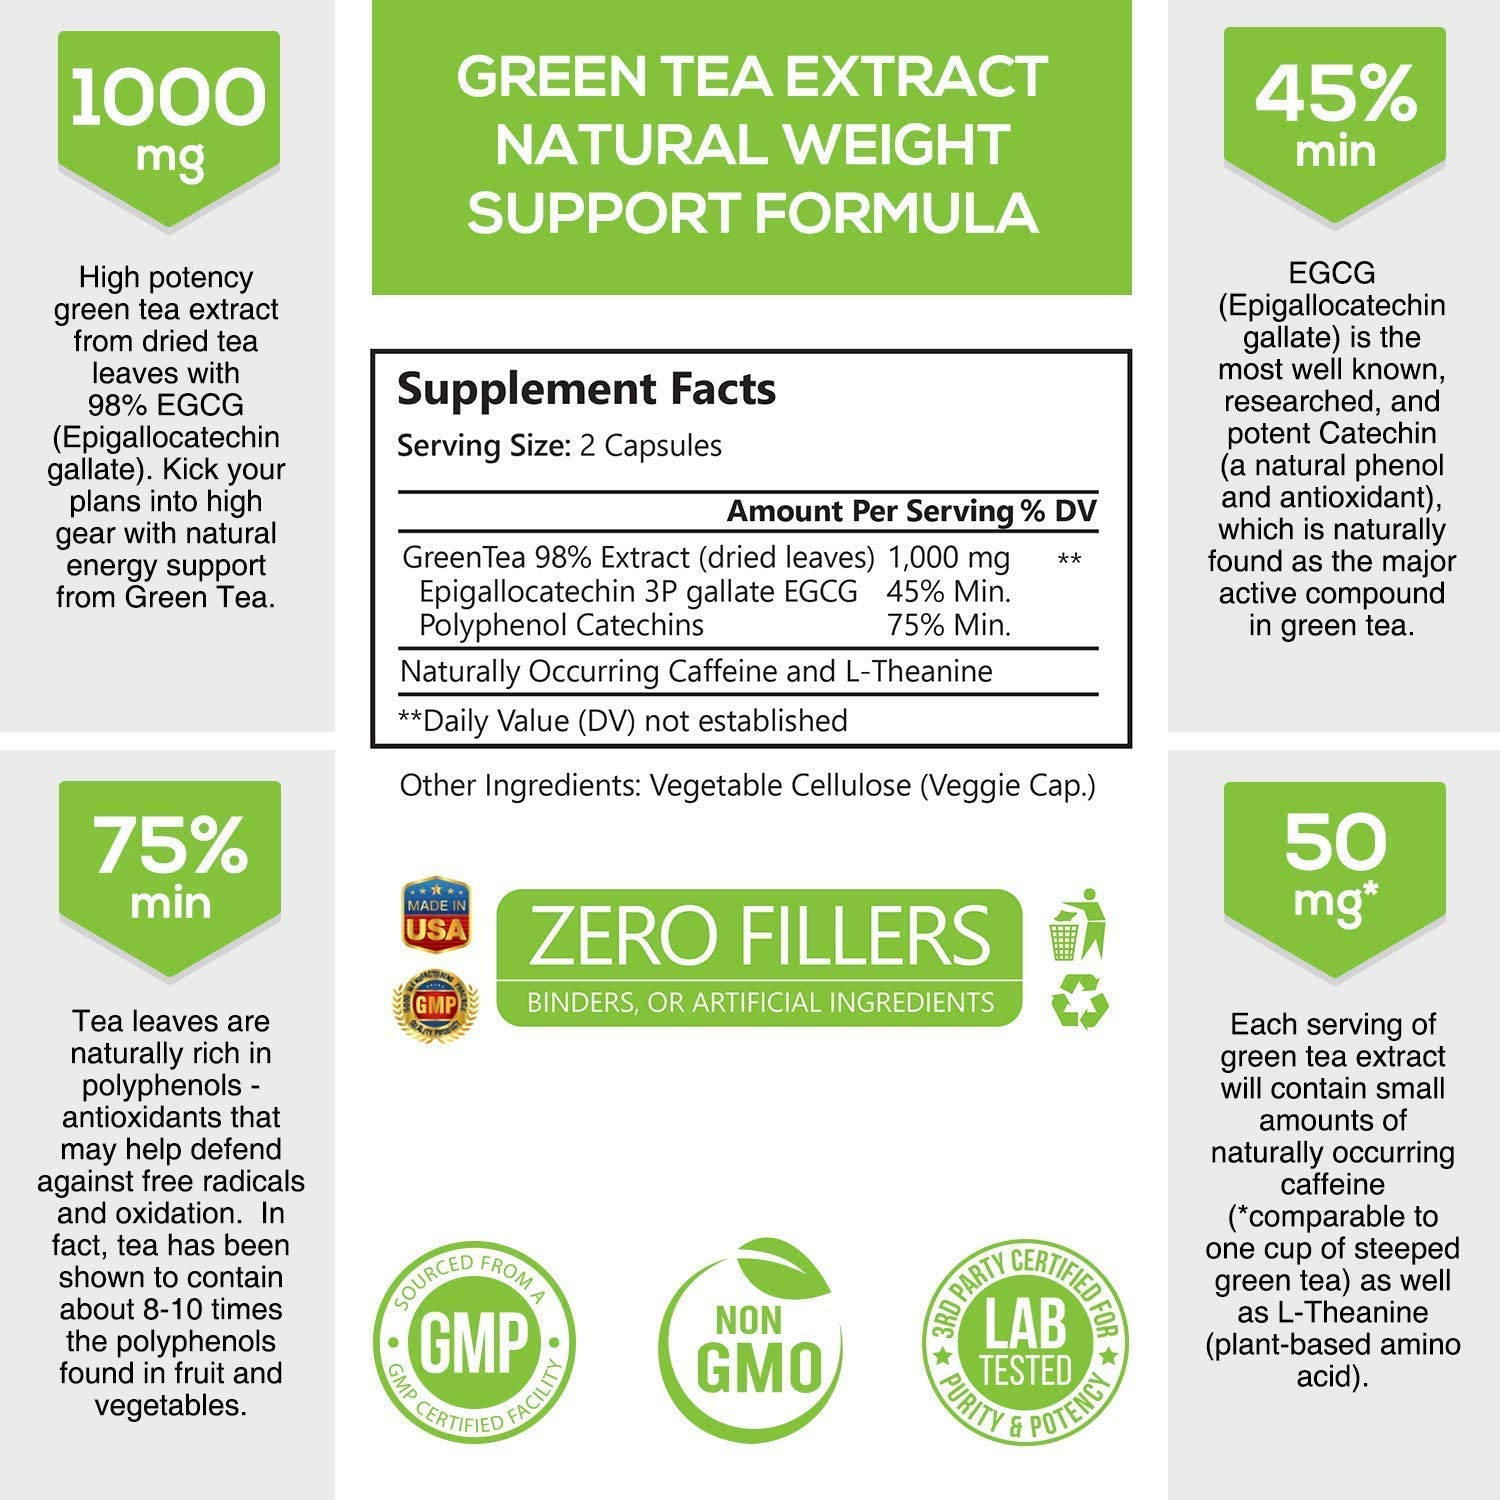 Green Tea Extract 98% Standardized Egcg for Healthy Weight Support 1000mg - Supports Healthy Heart, Metabolism & Energy with Antioxidants & Polyphenols - Gentle Caffeine, Made in USA - 60 Capsules: Health & Personal Care